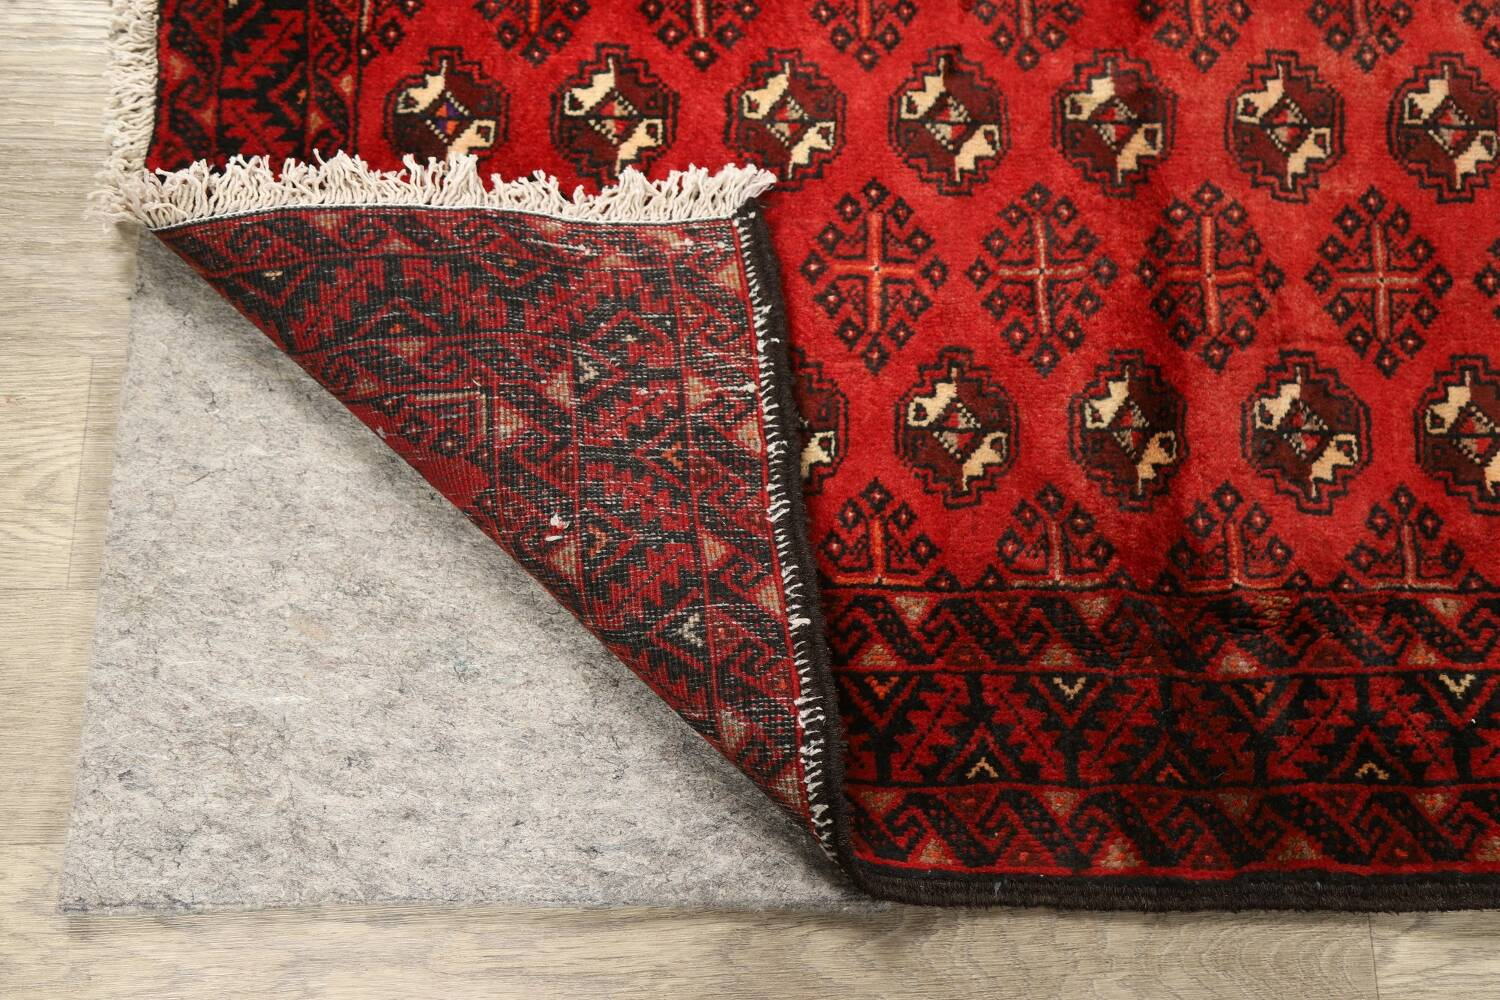 All-Over Red Geometric Balouch Persian Area Rug 4x7 image 19